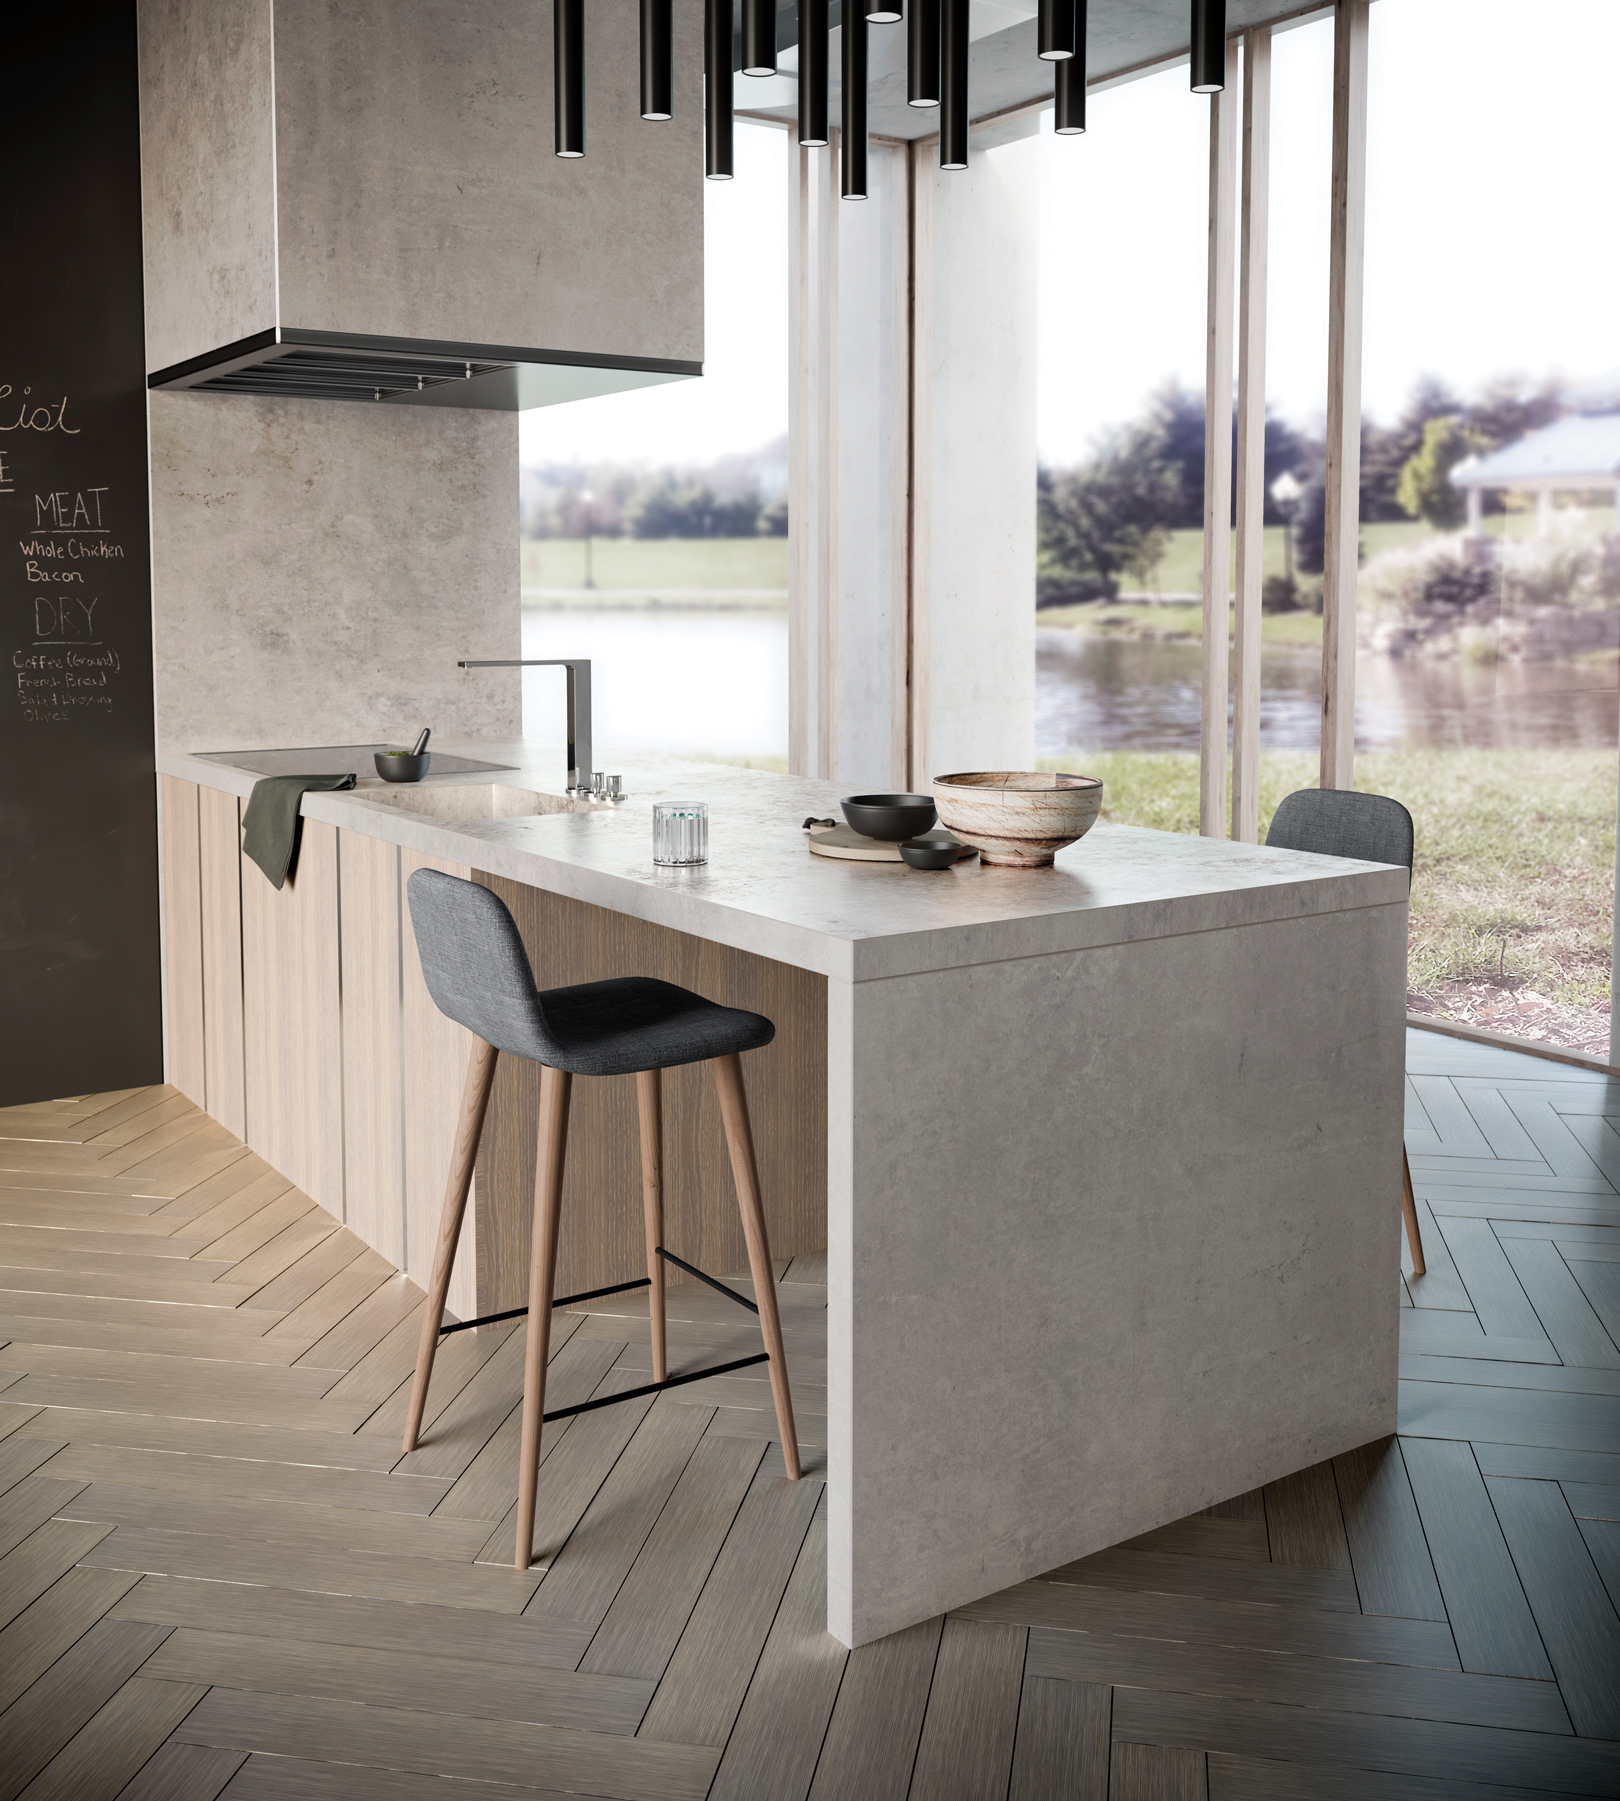 Dekton-Kitchen-Kreta.jpg